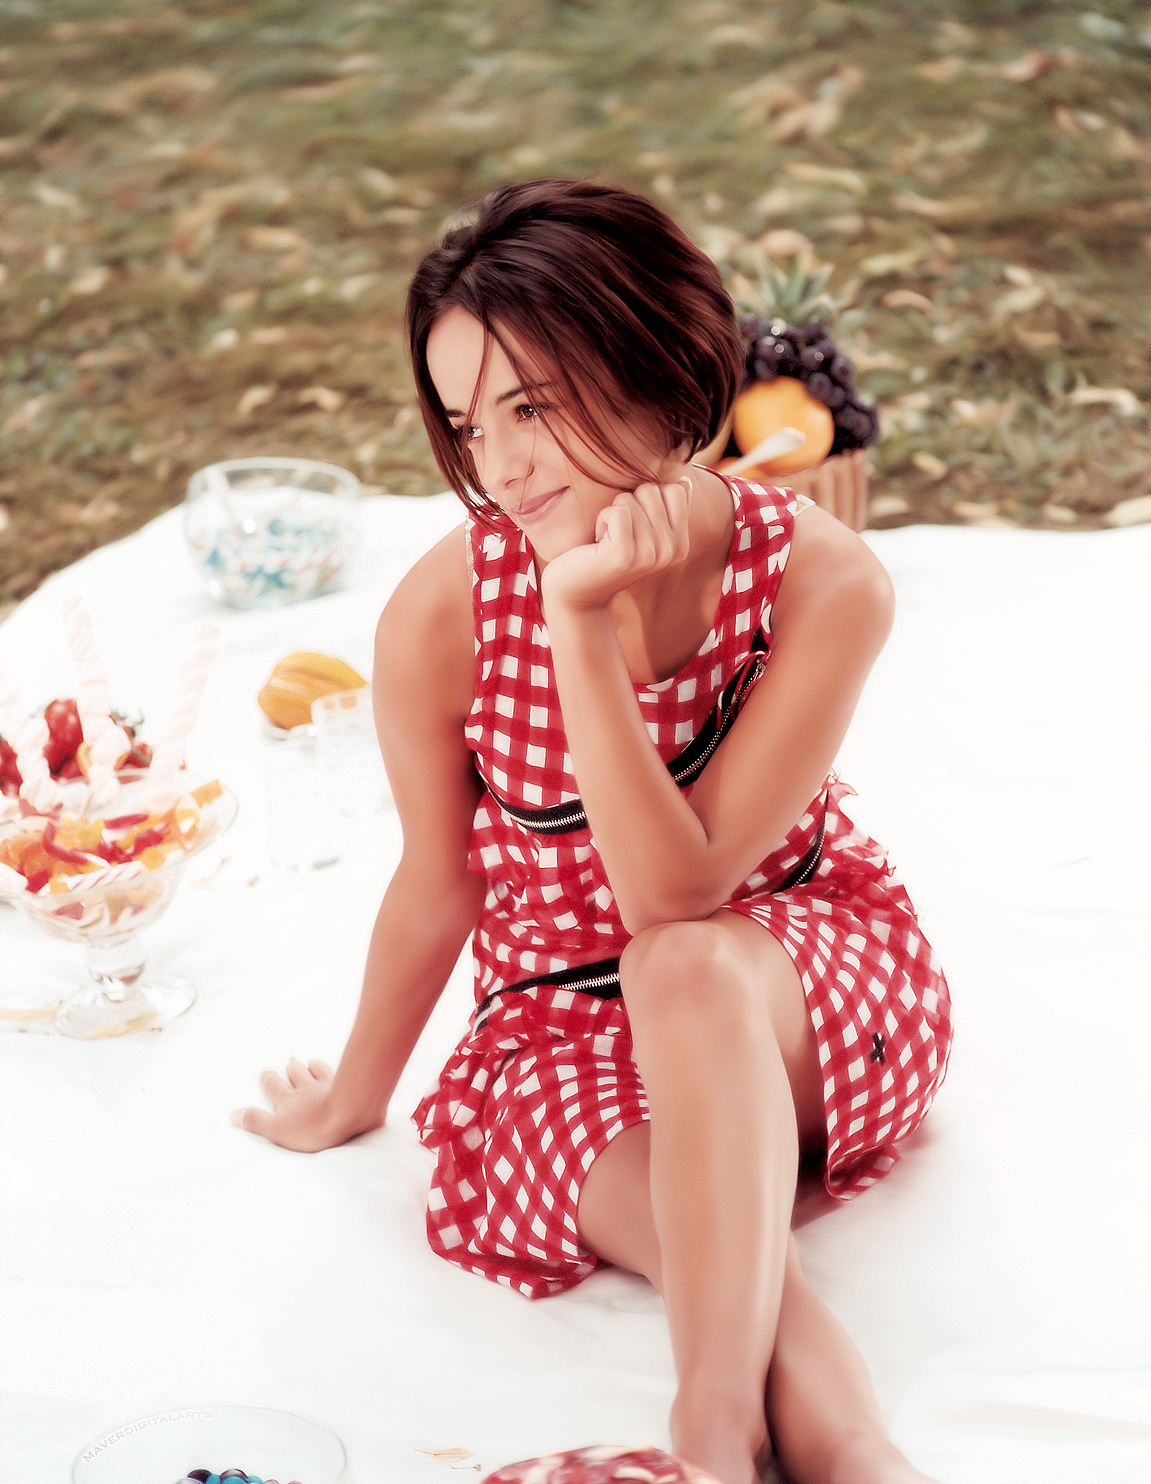 alizee wallpaper 27 - photo #20